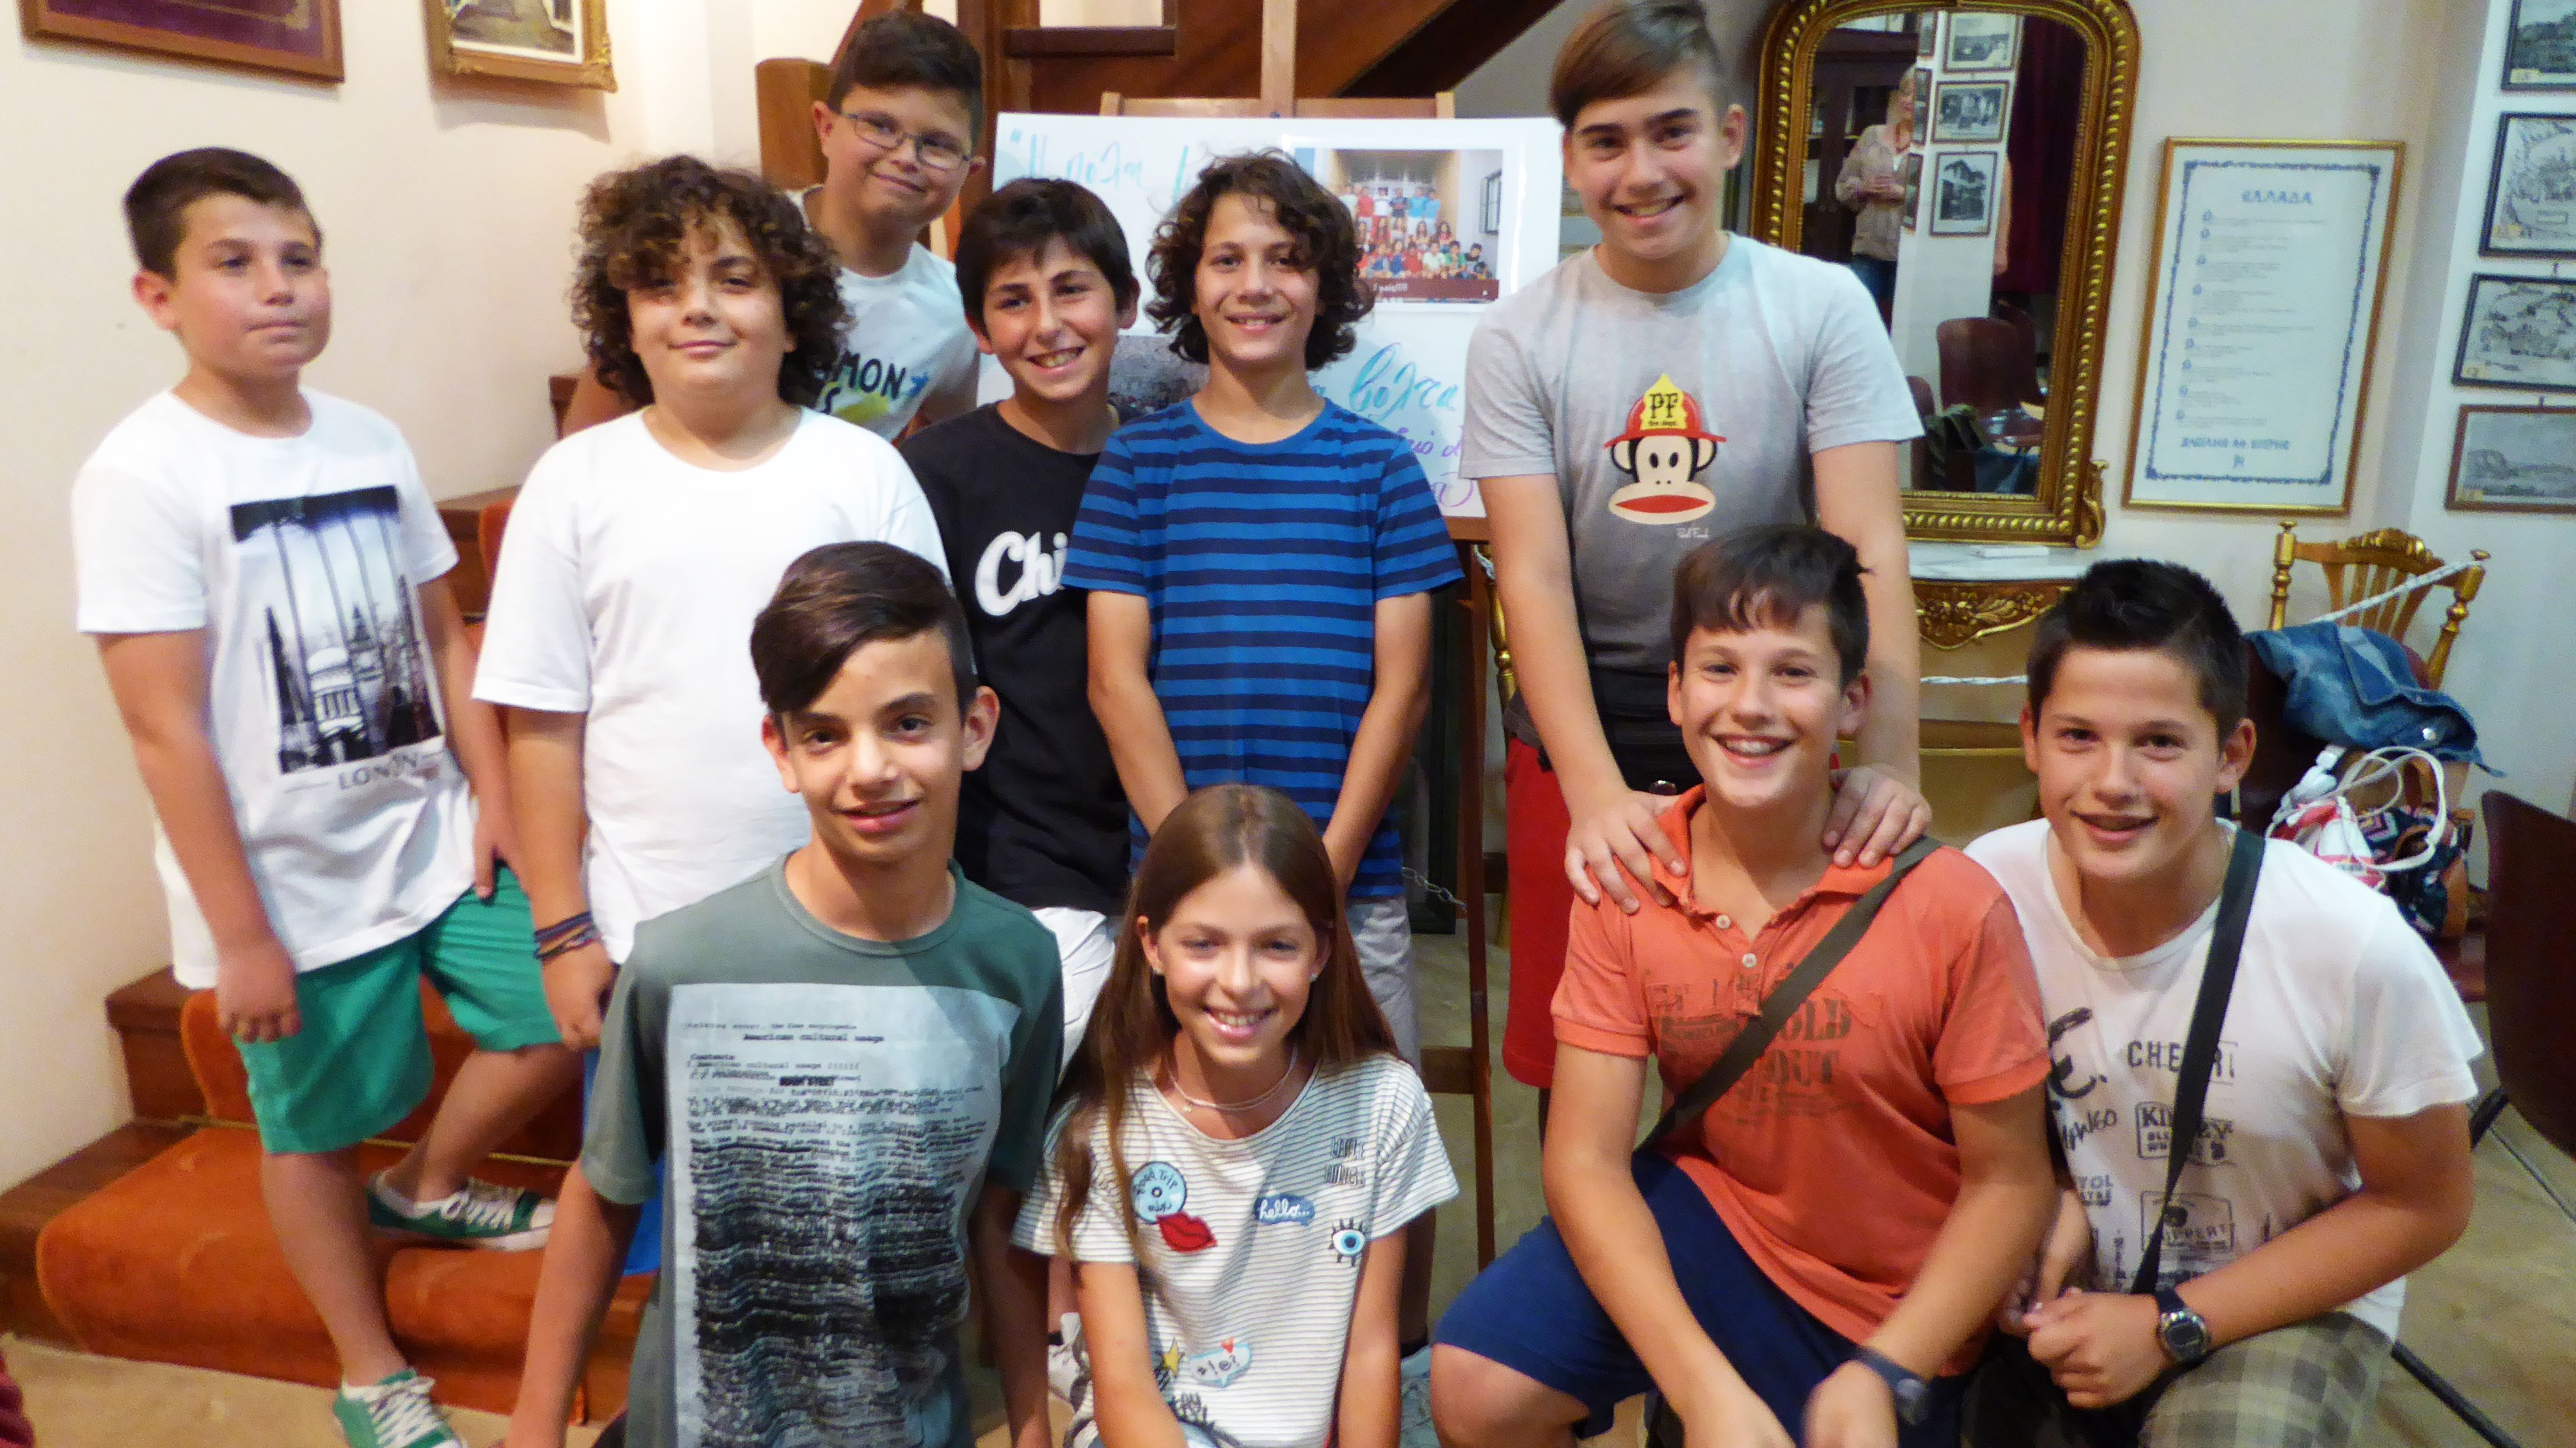 A group of children invited us to their art display in Nauplion, Greece.  The children had taken photos of interest in Nauplion for the event.